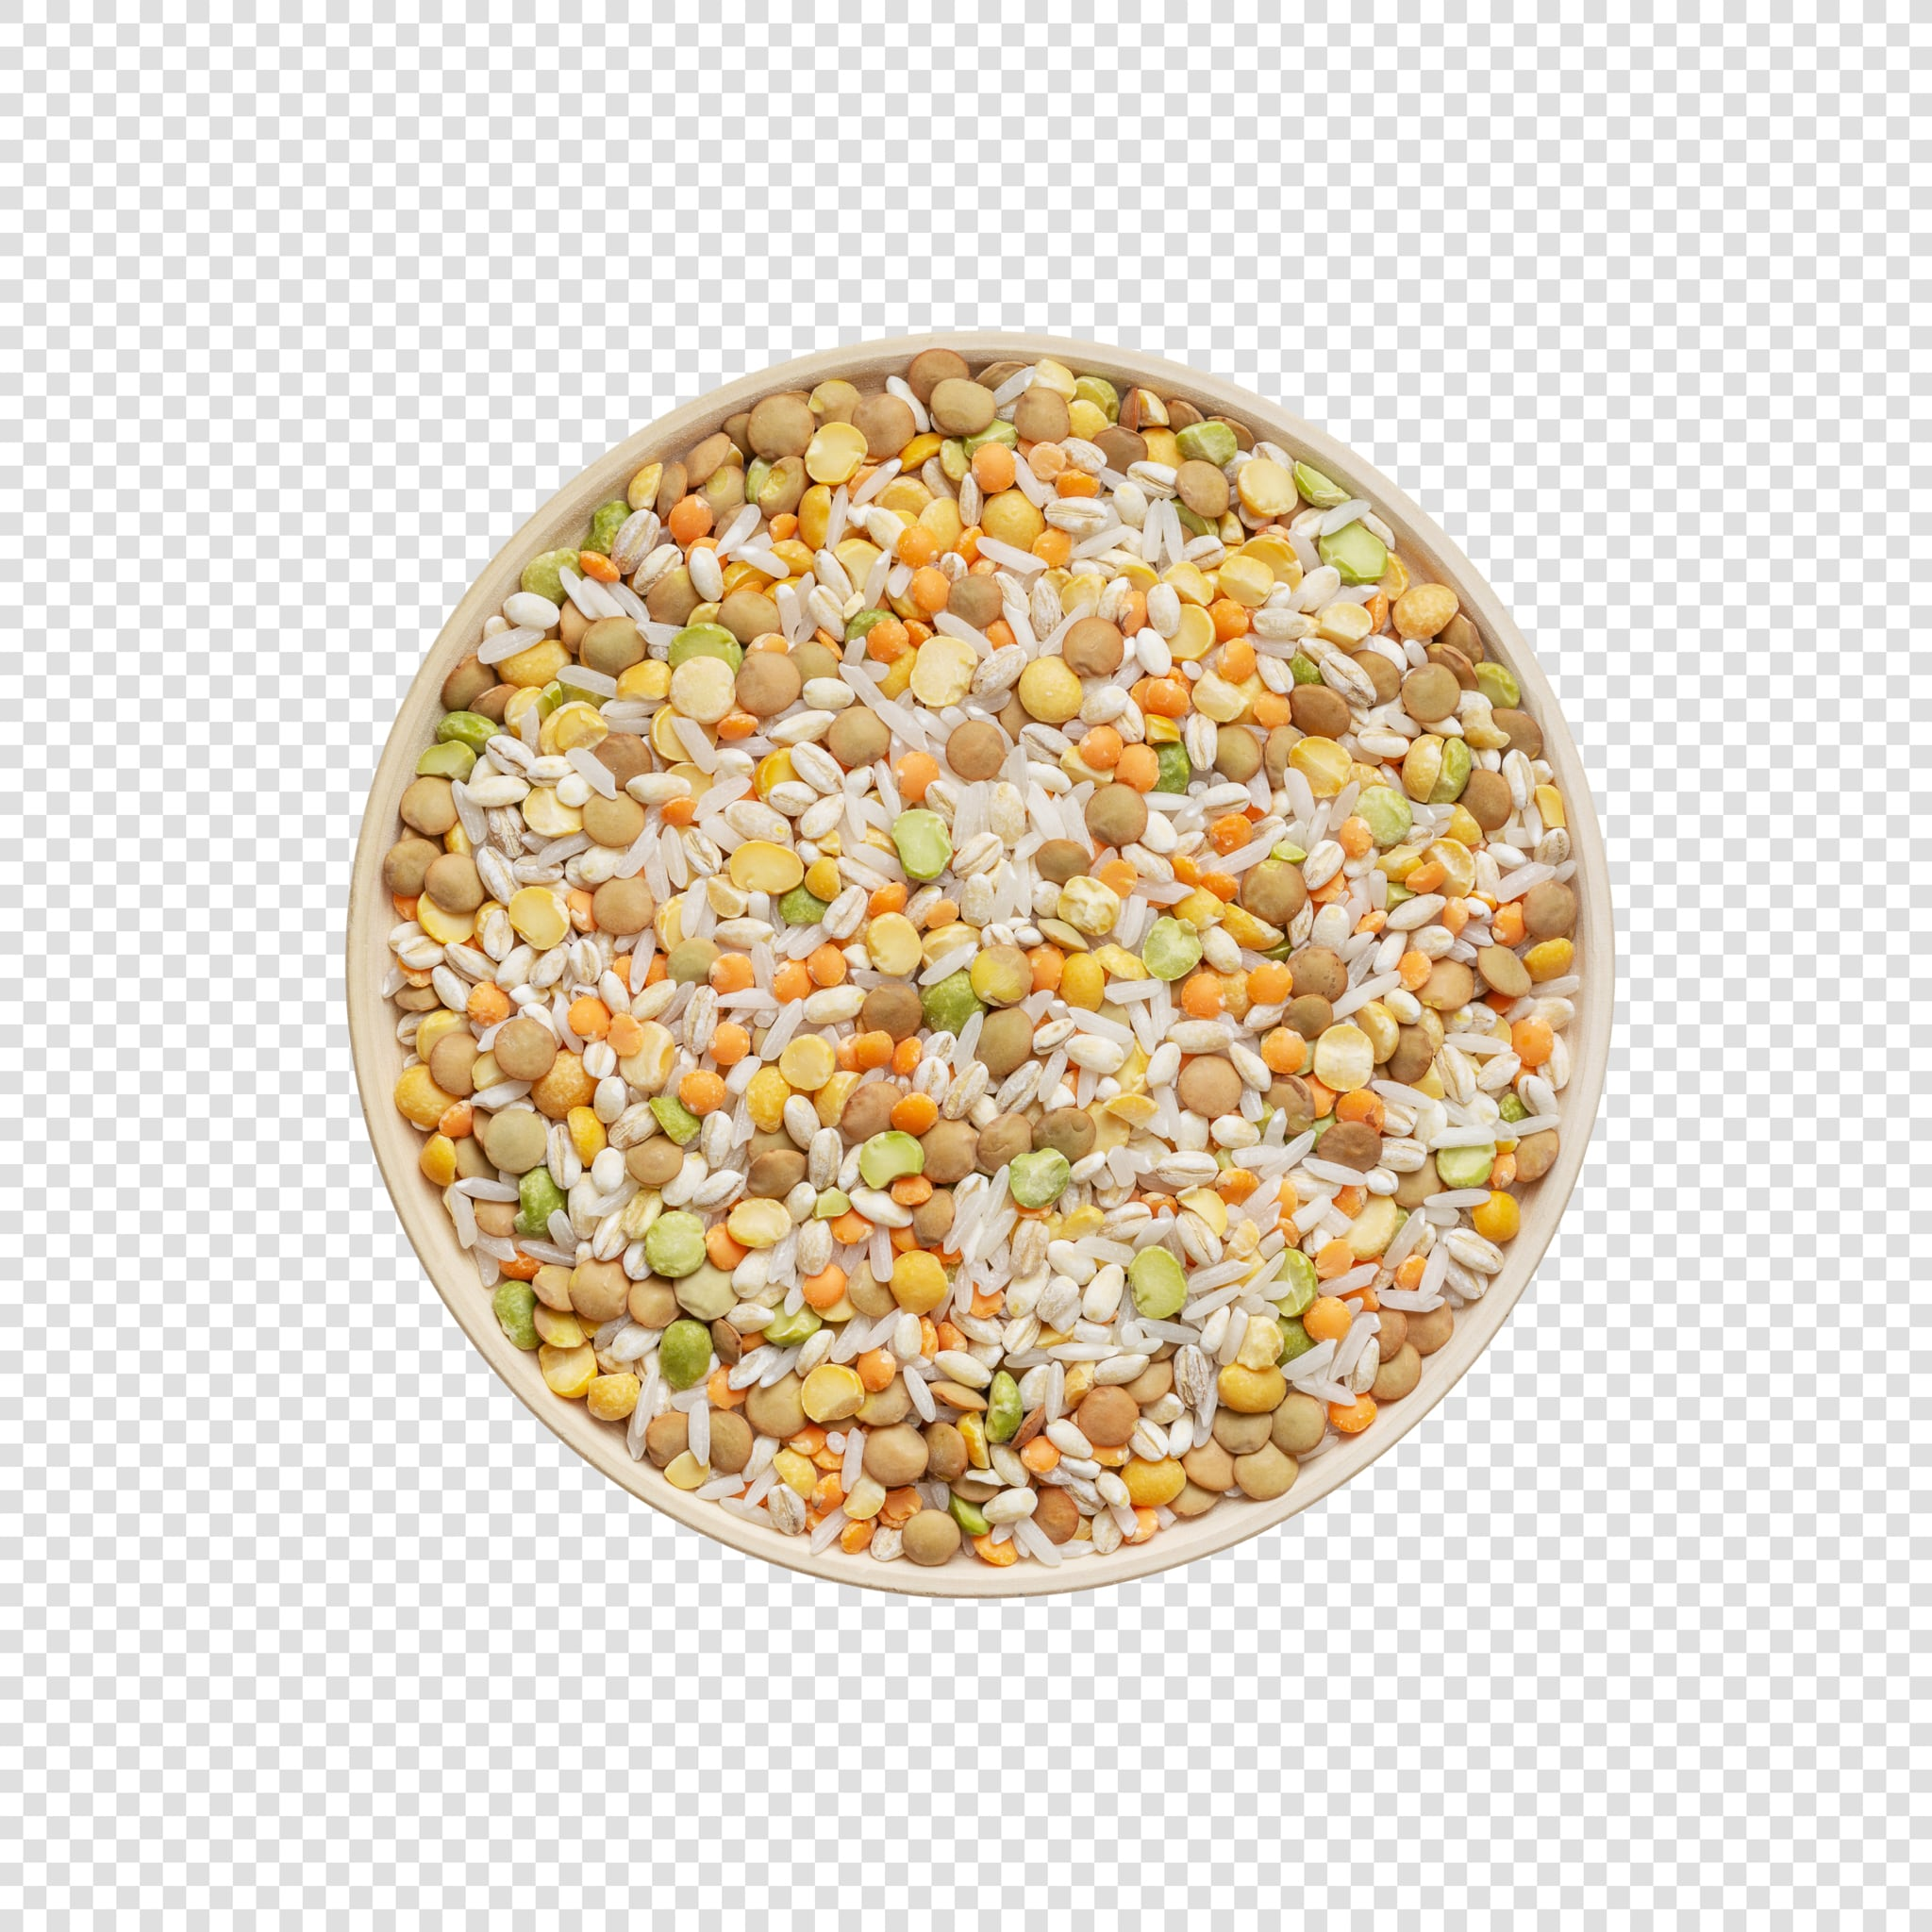 Isolated Grains psd image